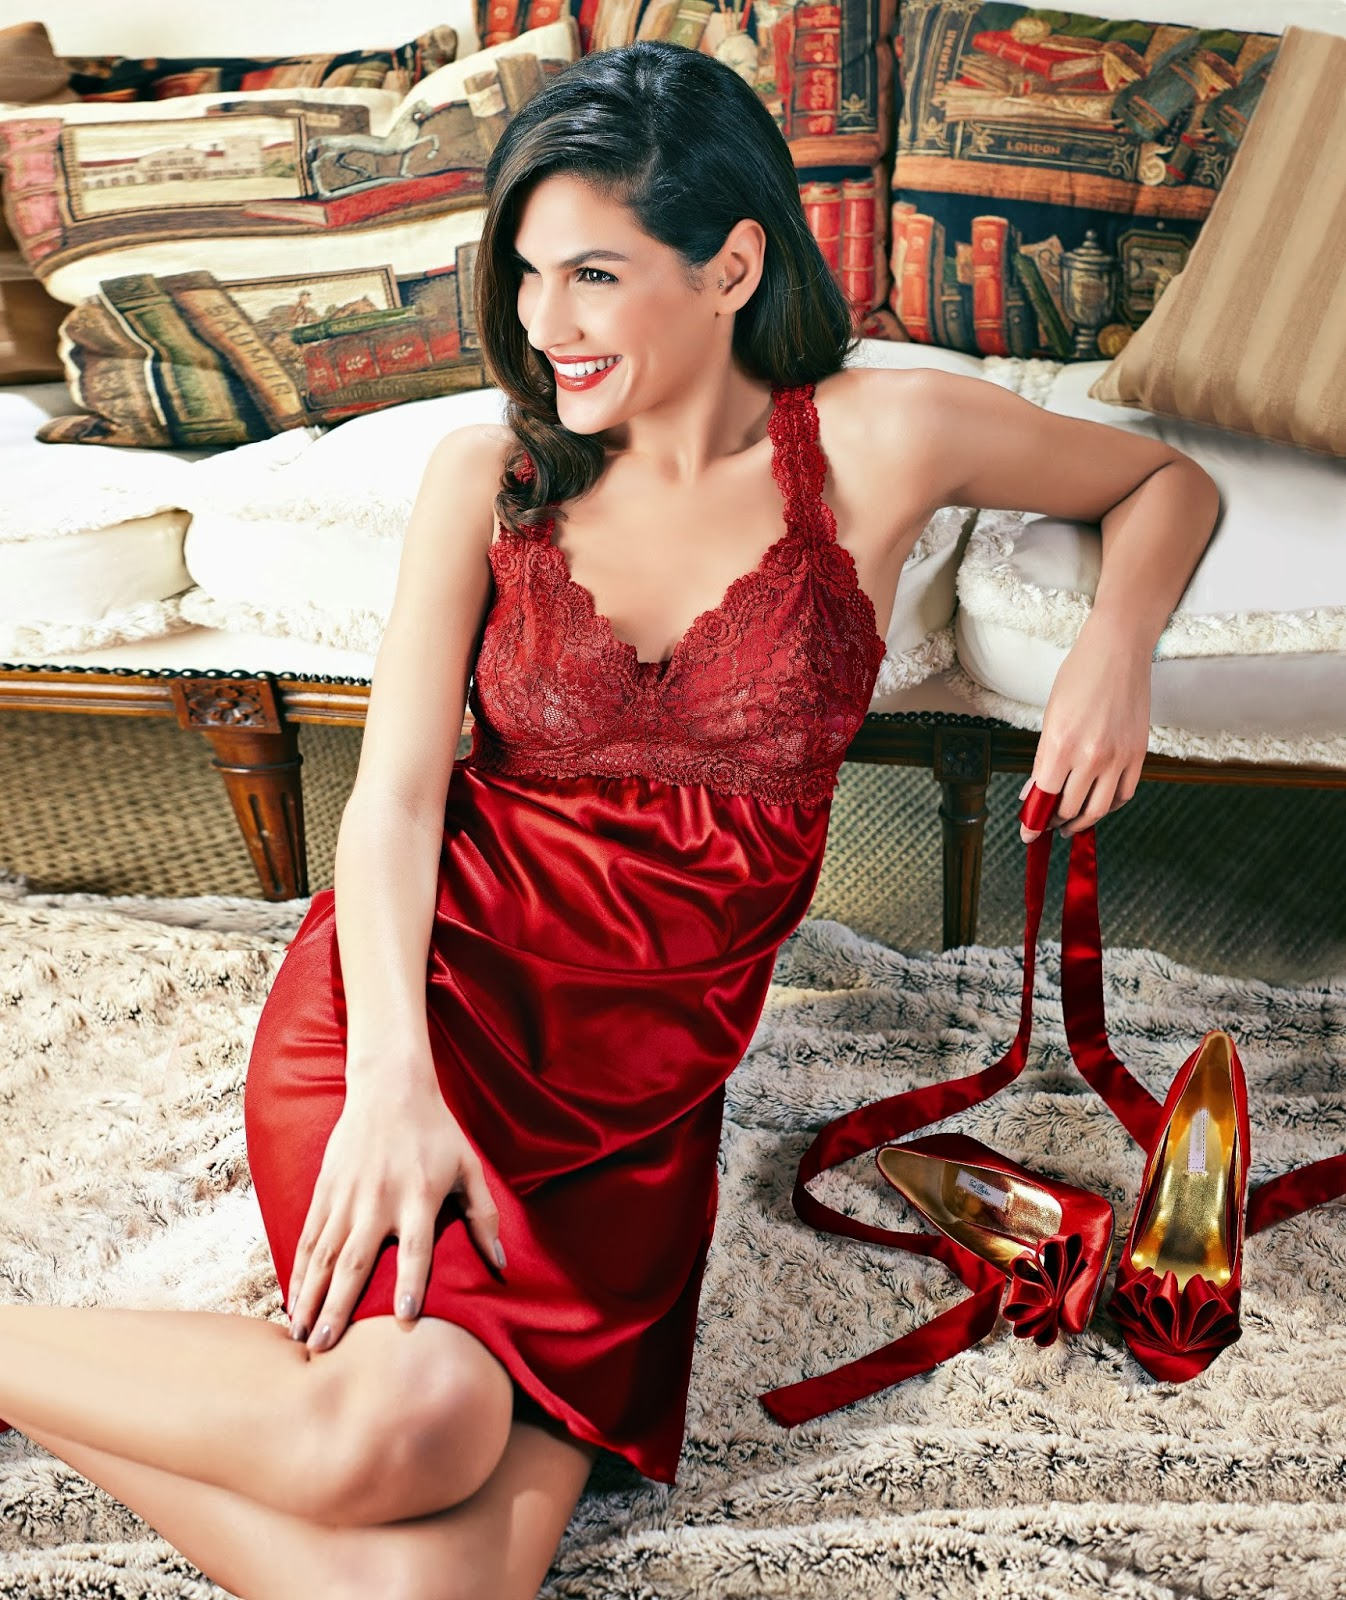 ad3cff9936 Make Your Valentine s Day Special With Enamor - A Lingerie Brand ...